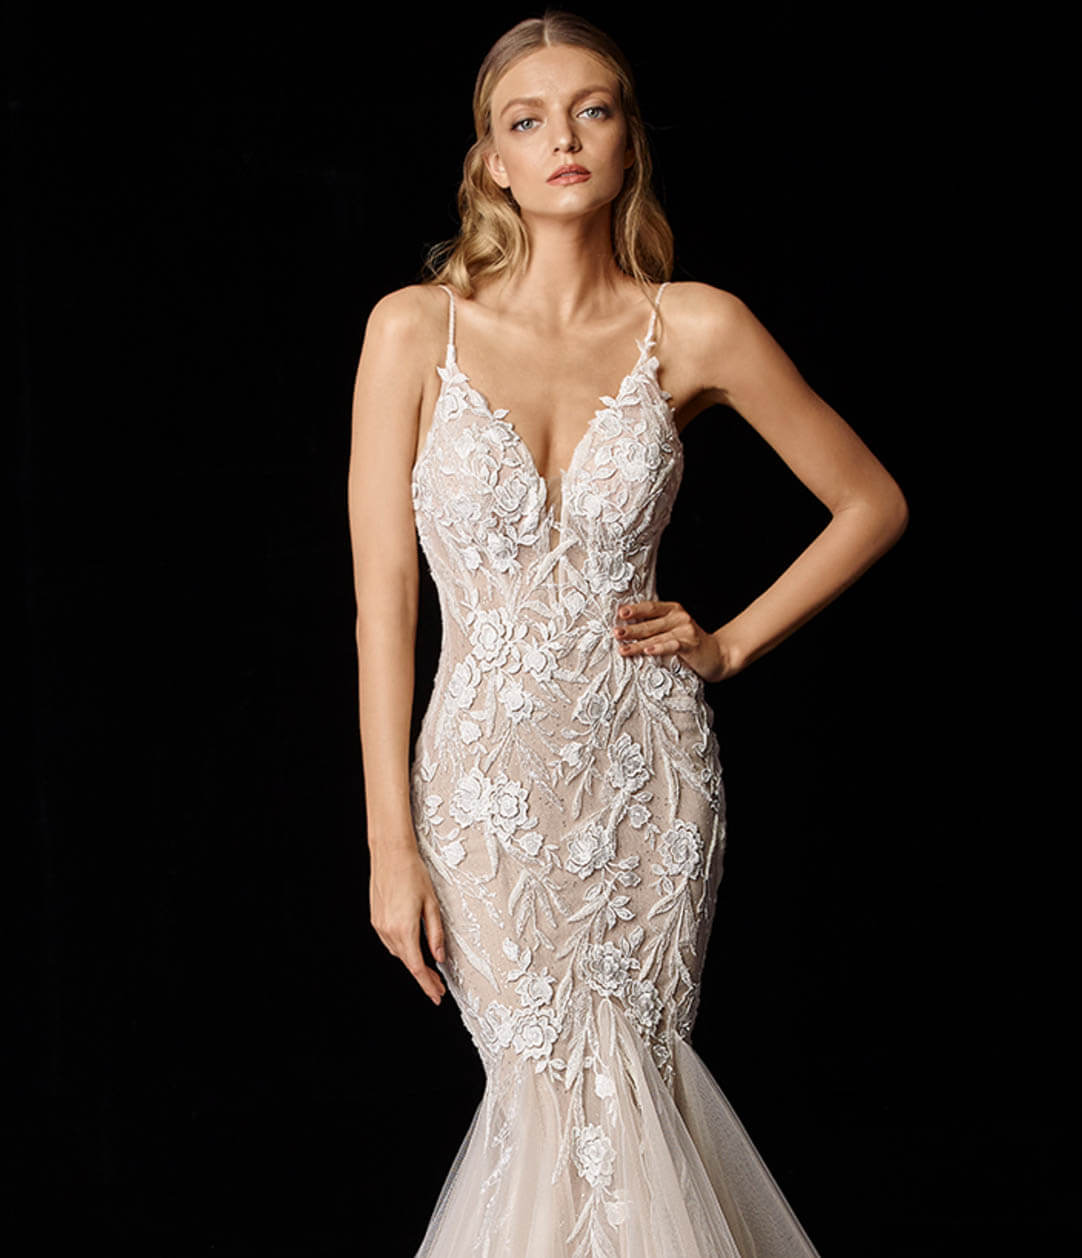 Photo of Model Wearing a Enzoani Gown